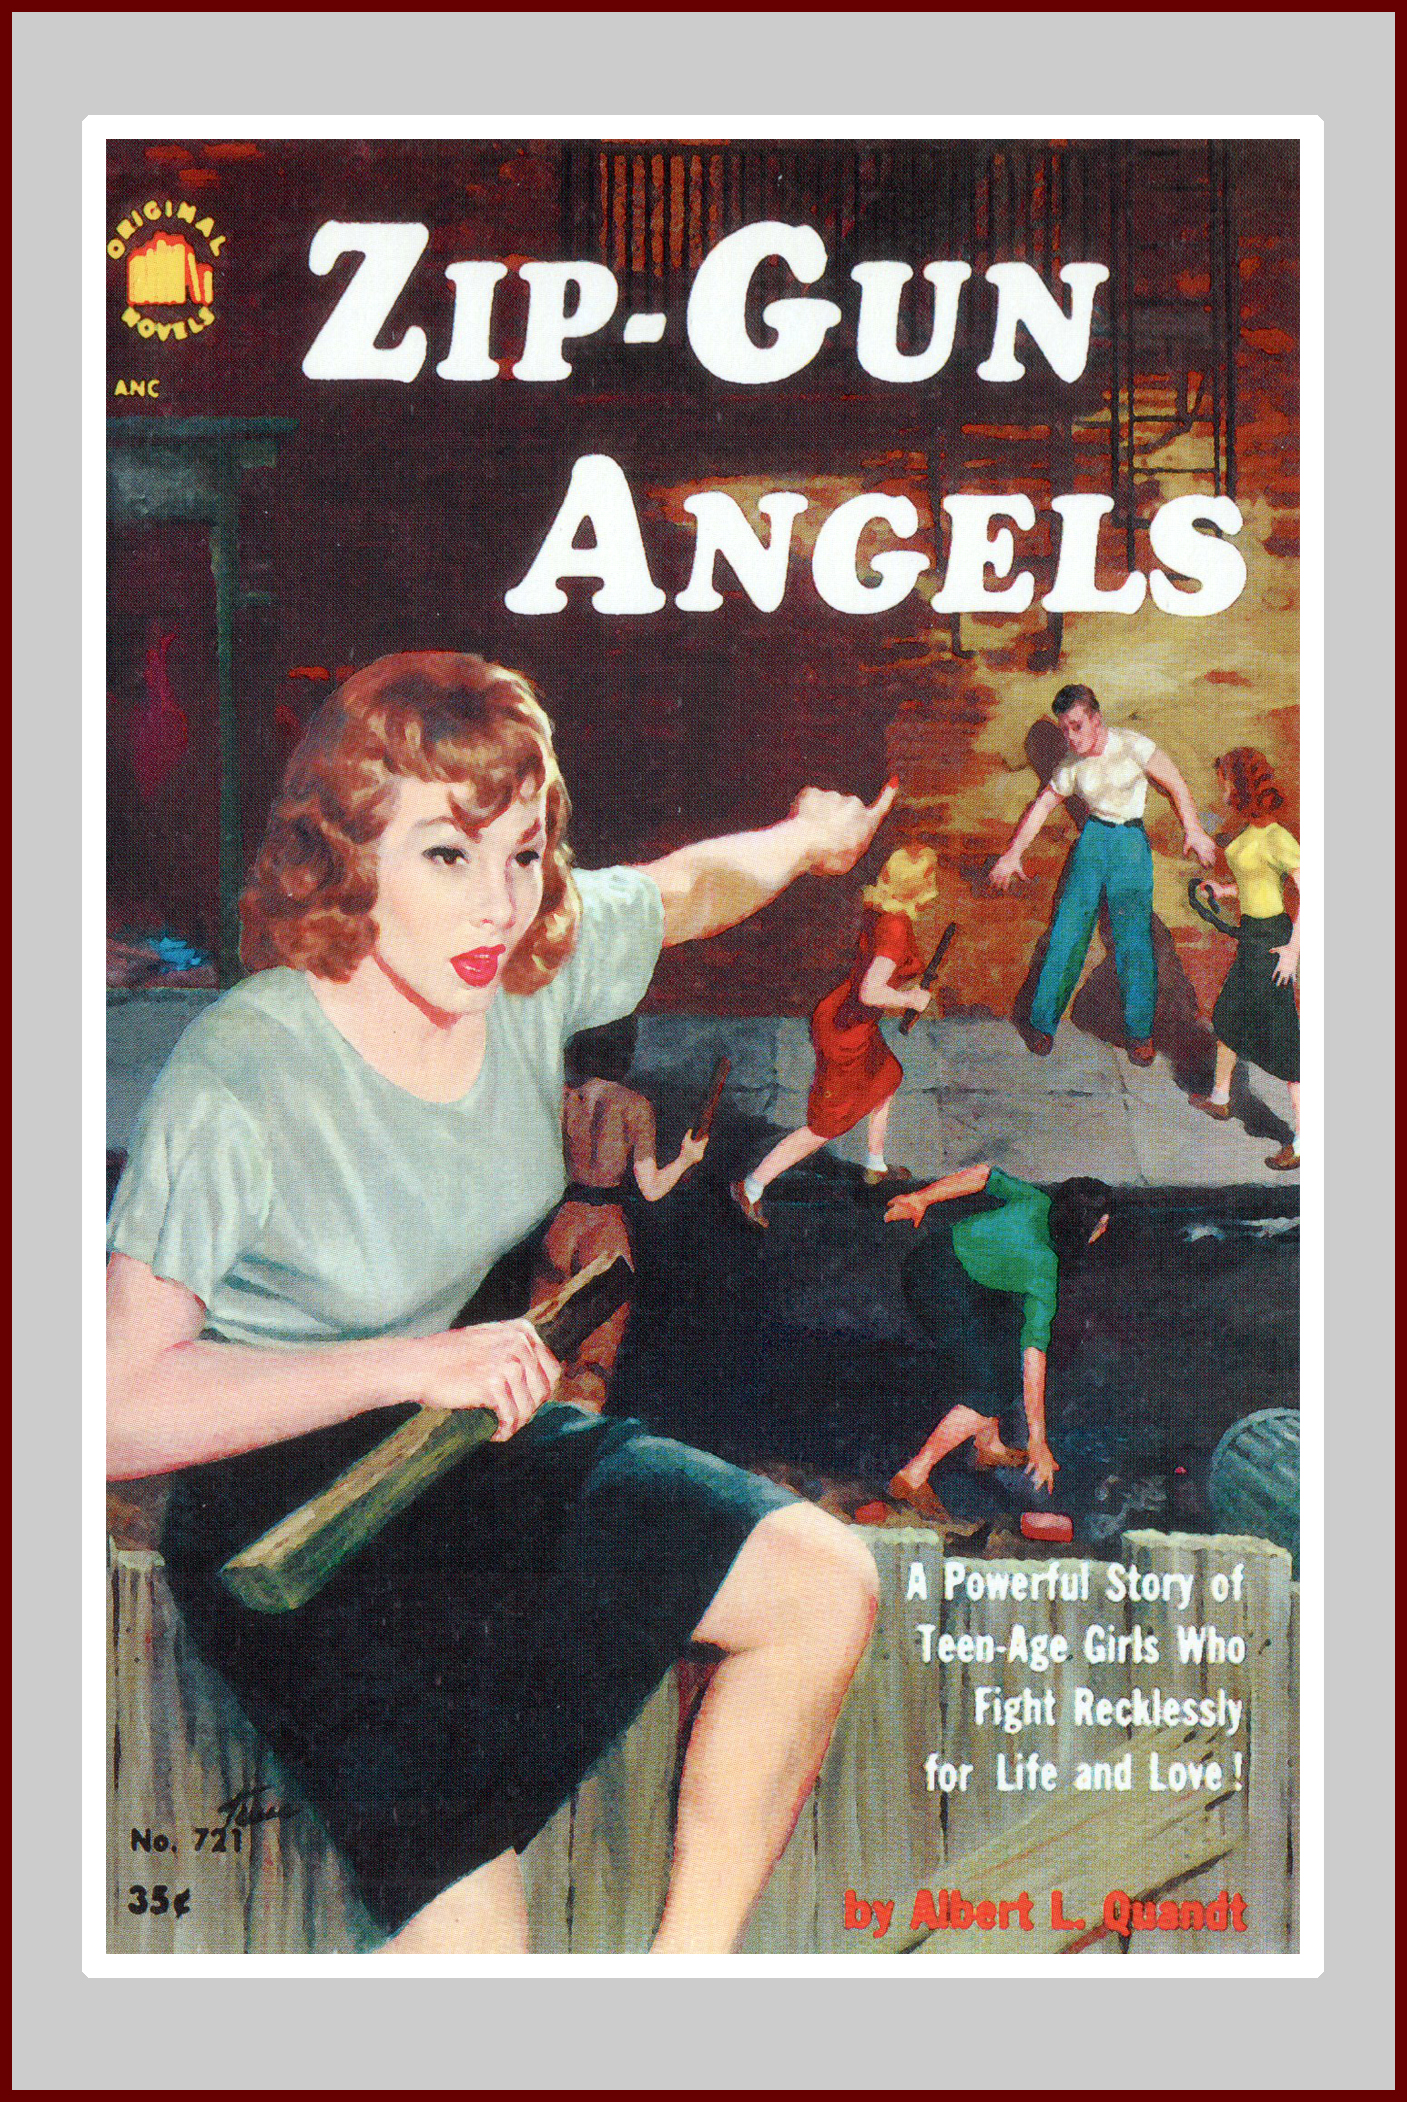 Zip Gun Angels, a pulp fiction novel